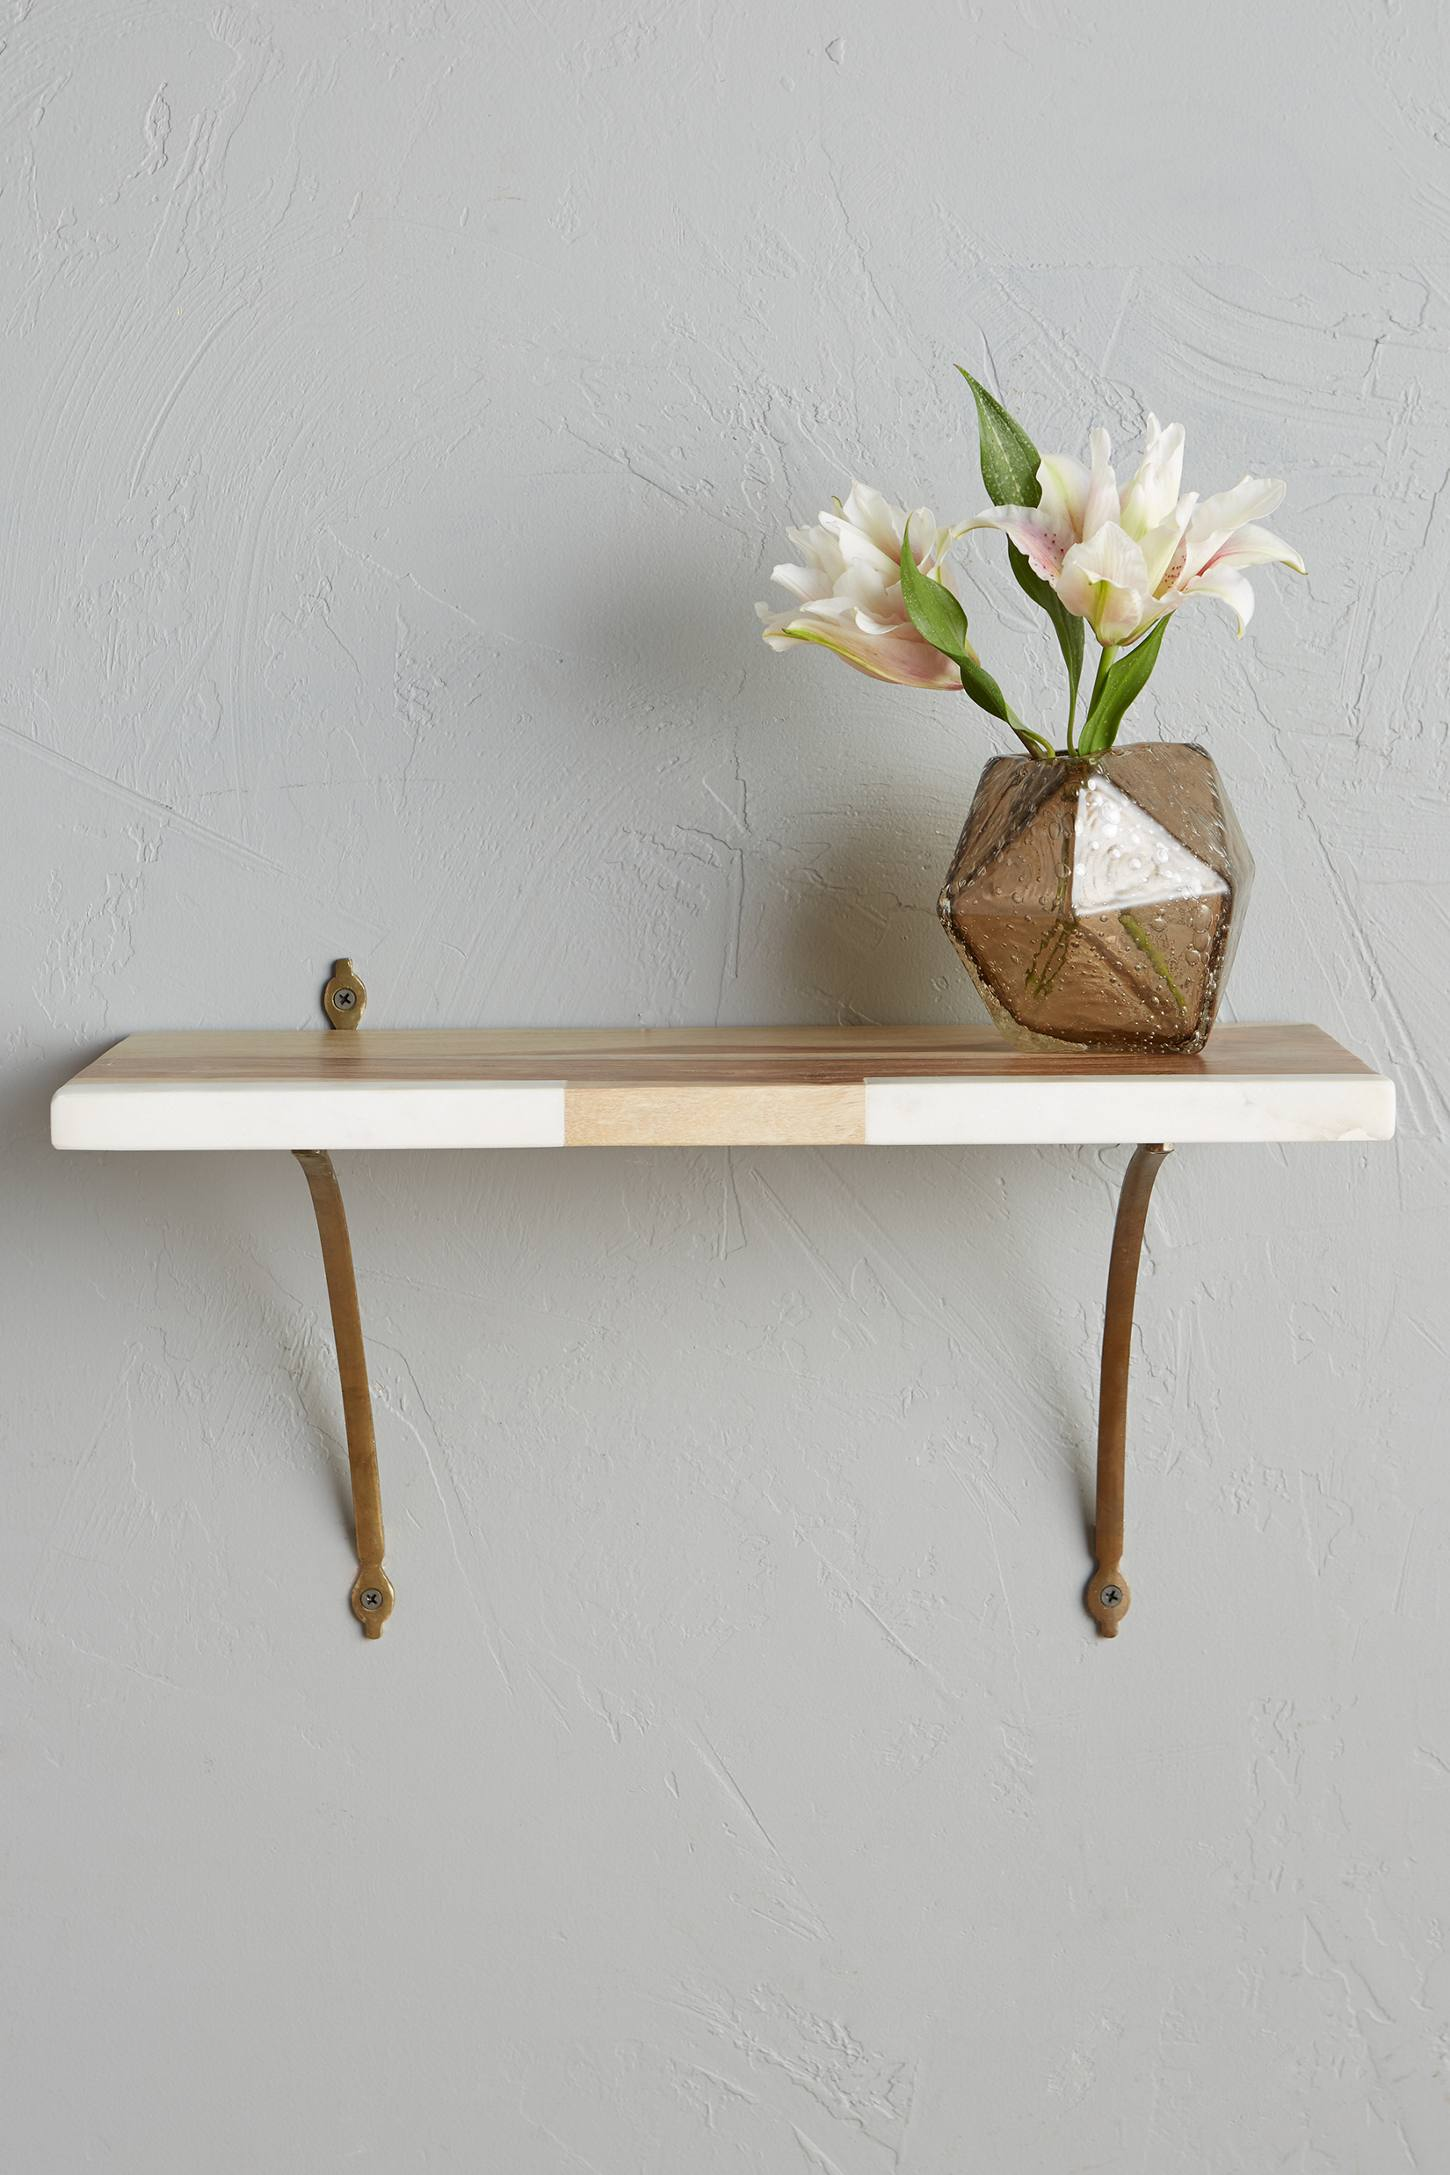 Marble-Blocked Shelf